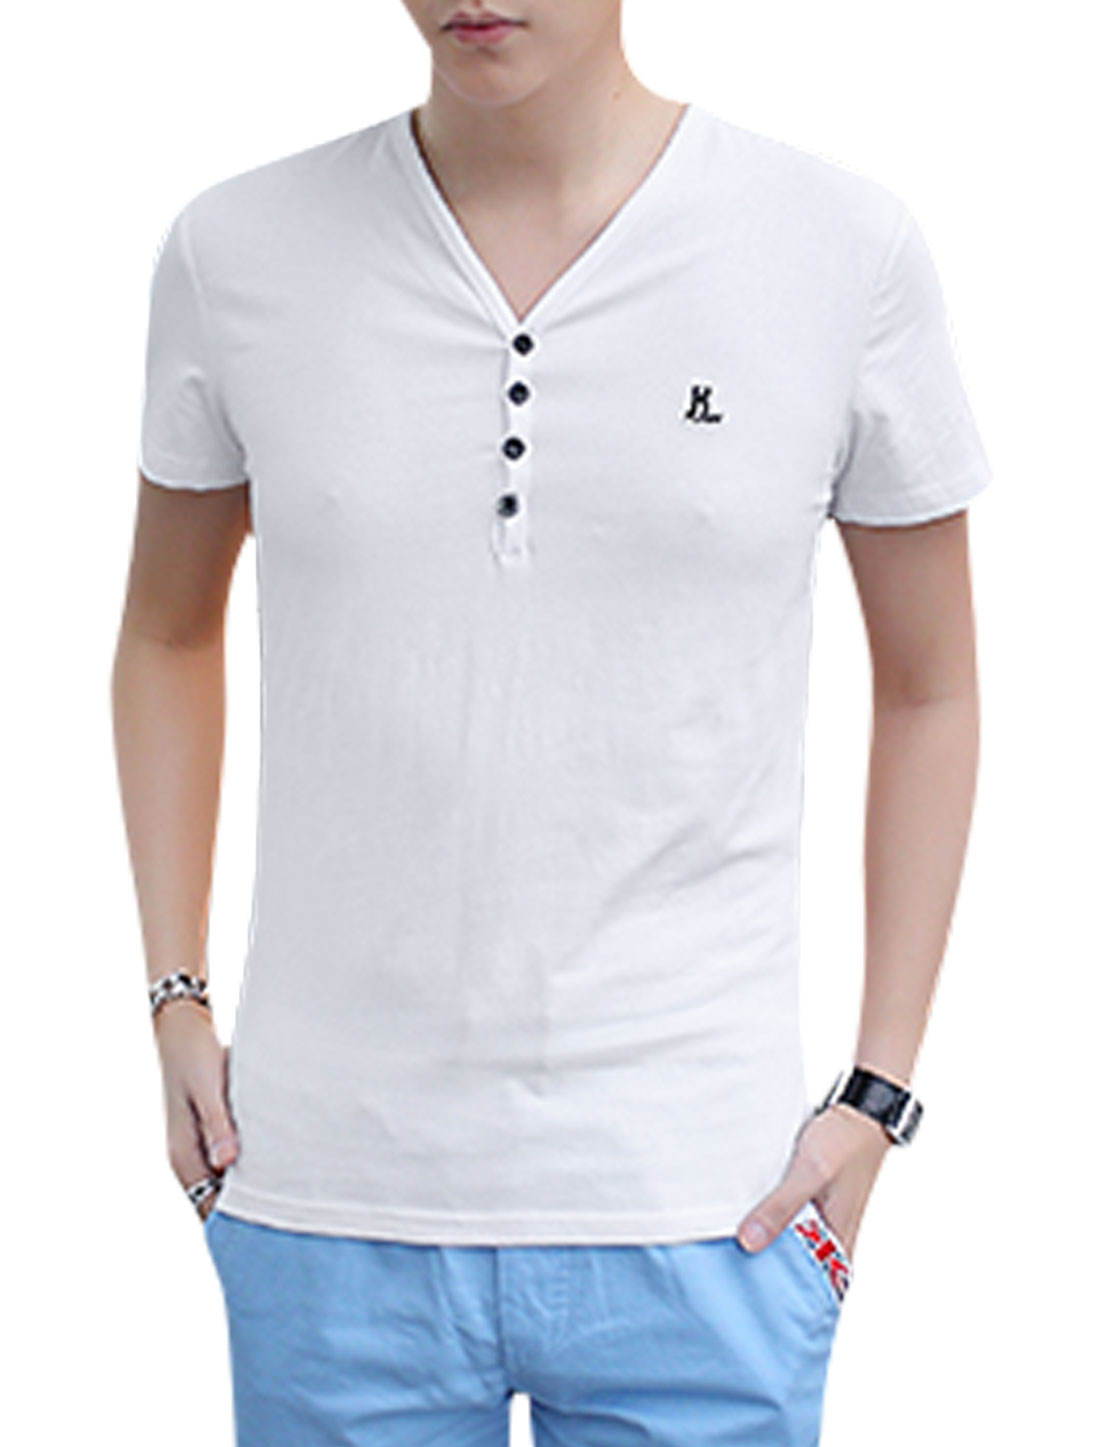 Men Short Sleeve V Neck 1/4 Placket Stretchy Casual T Shirt White M